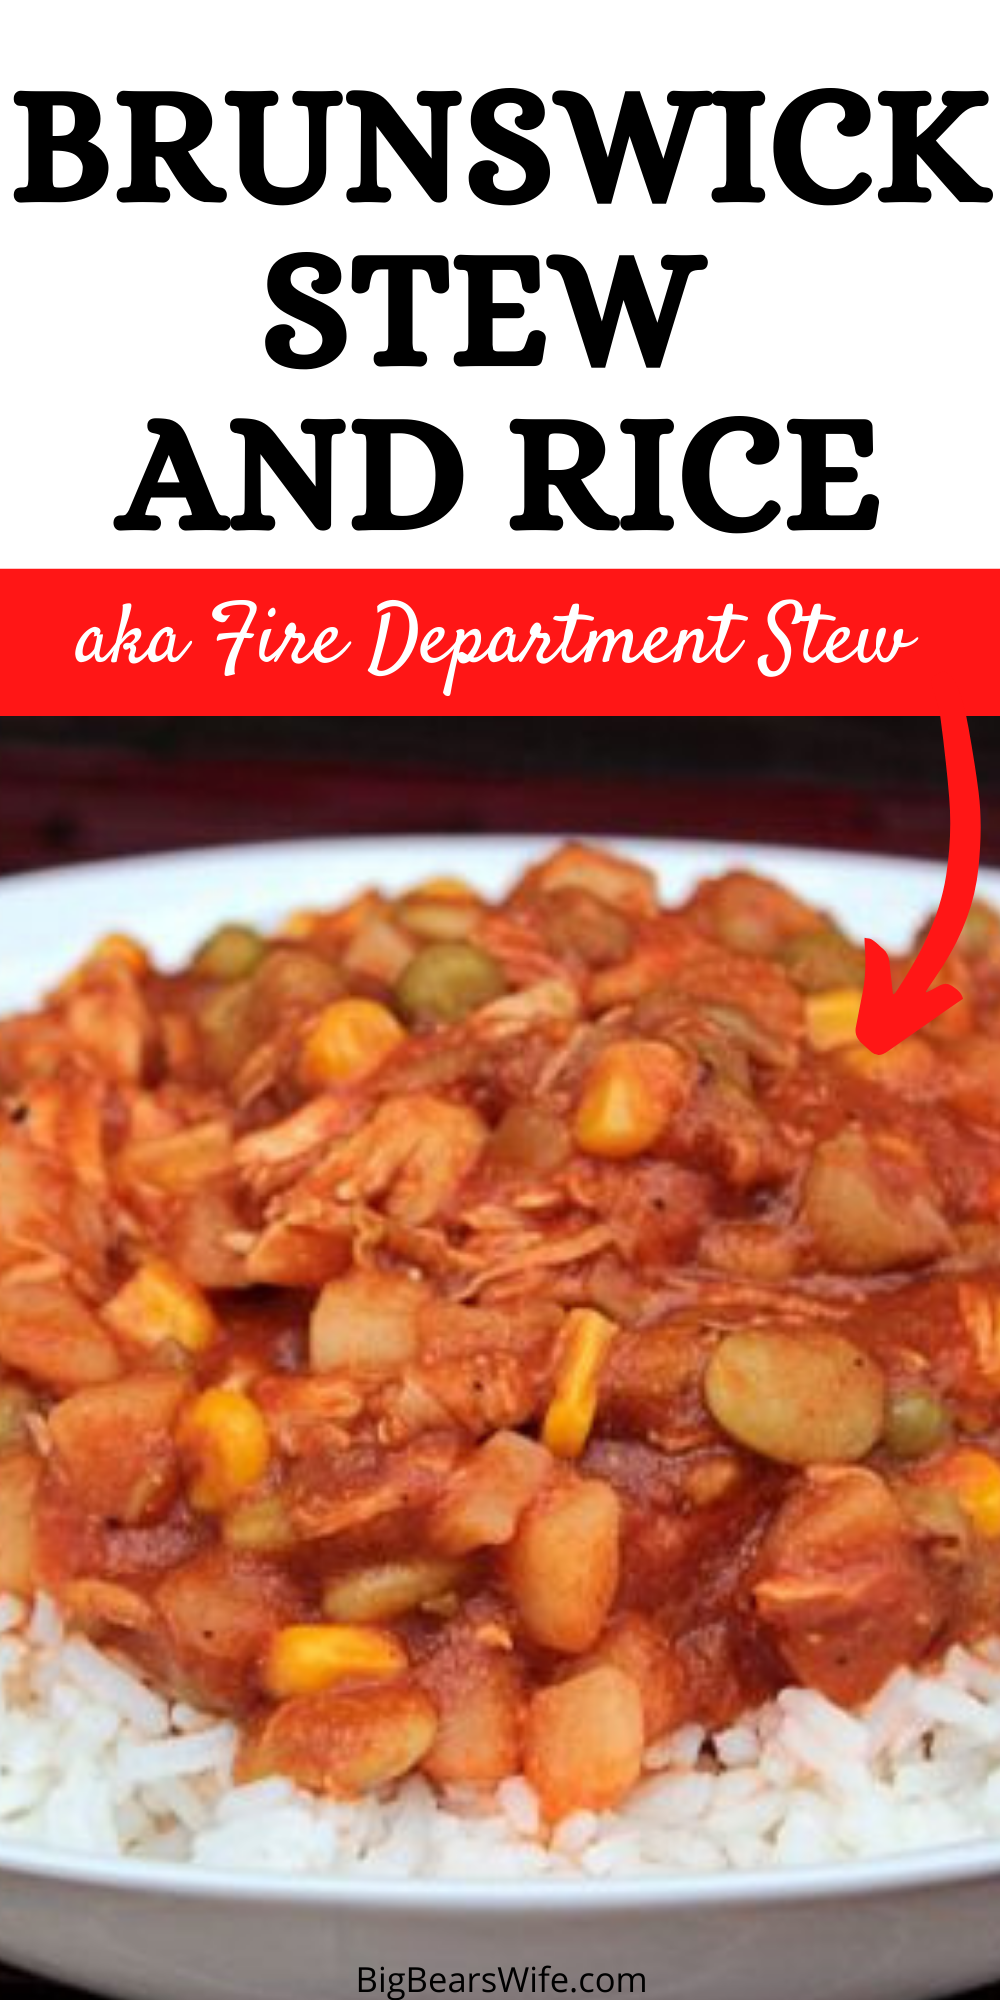 We love fire department stew but we can only get it a few times a year! So we decided to make our own version at home! This Brunswick Stew and Rice is stew perfection but of course, you don't have to serve it over rice! via @bigbearswife